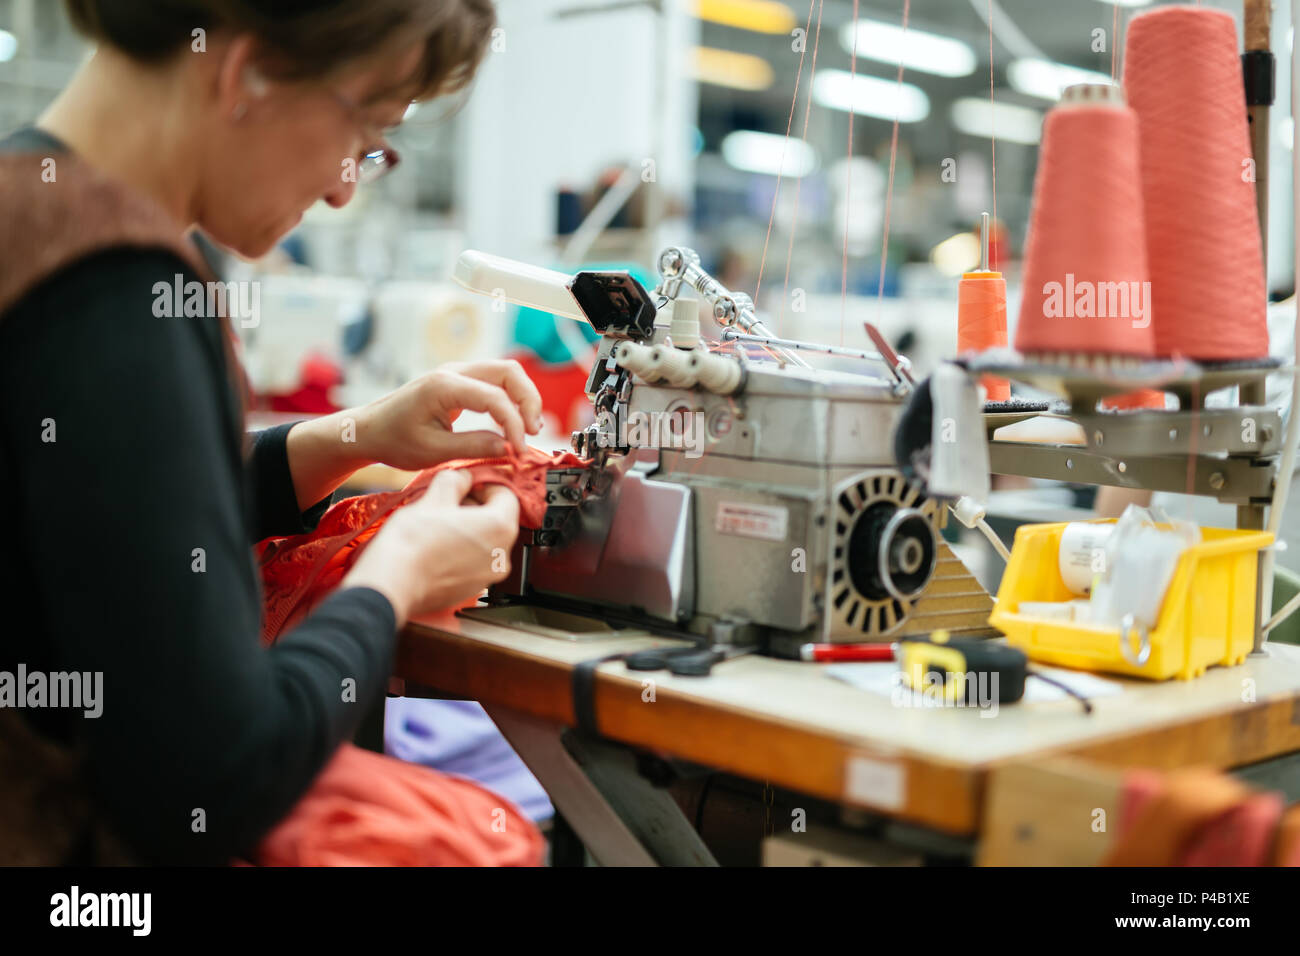 Woman working in textile industry - Stock Image